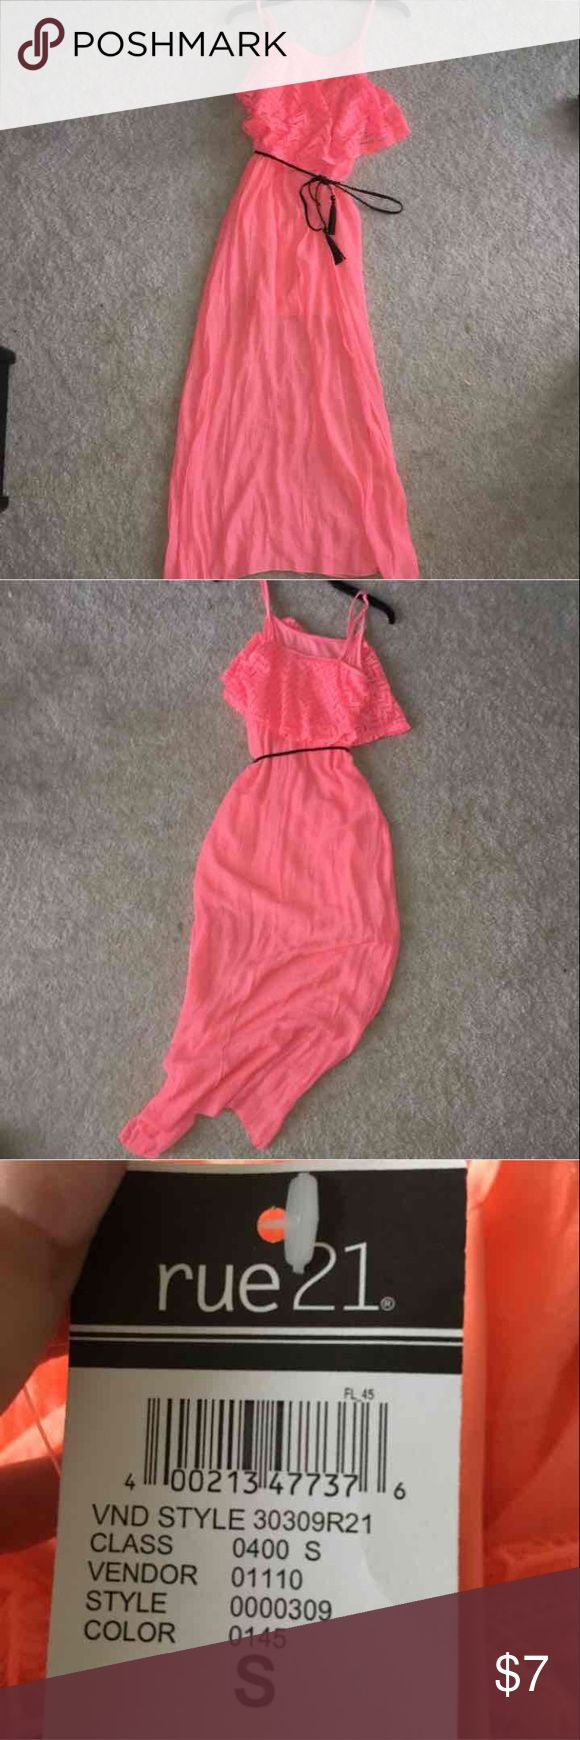 CORAL MAXI DRESS WITH BELT new with tags! Rue 21 Dresses Maxi